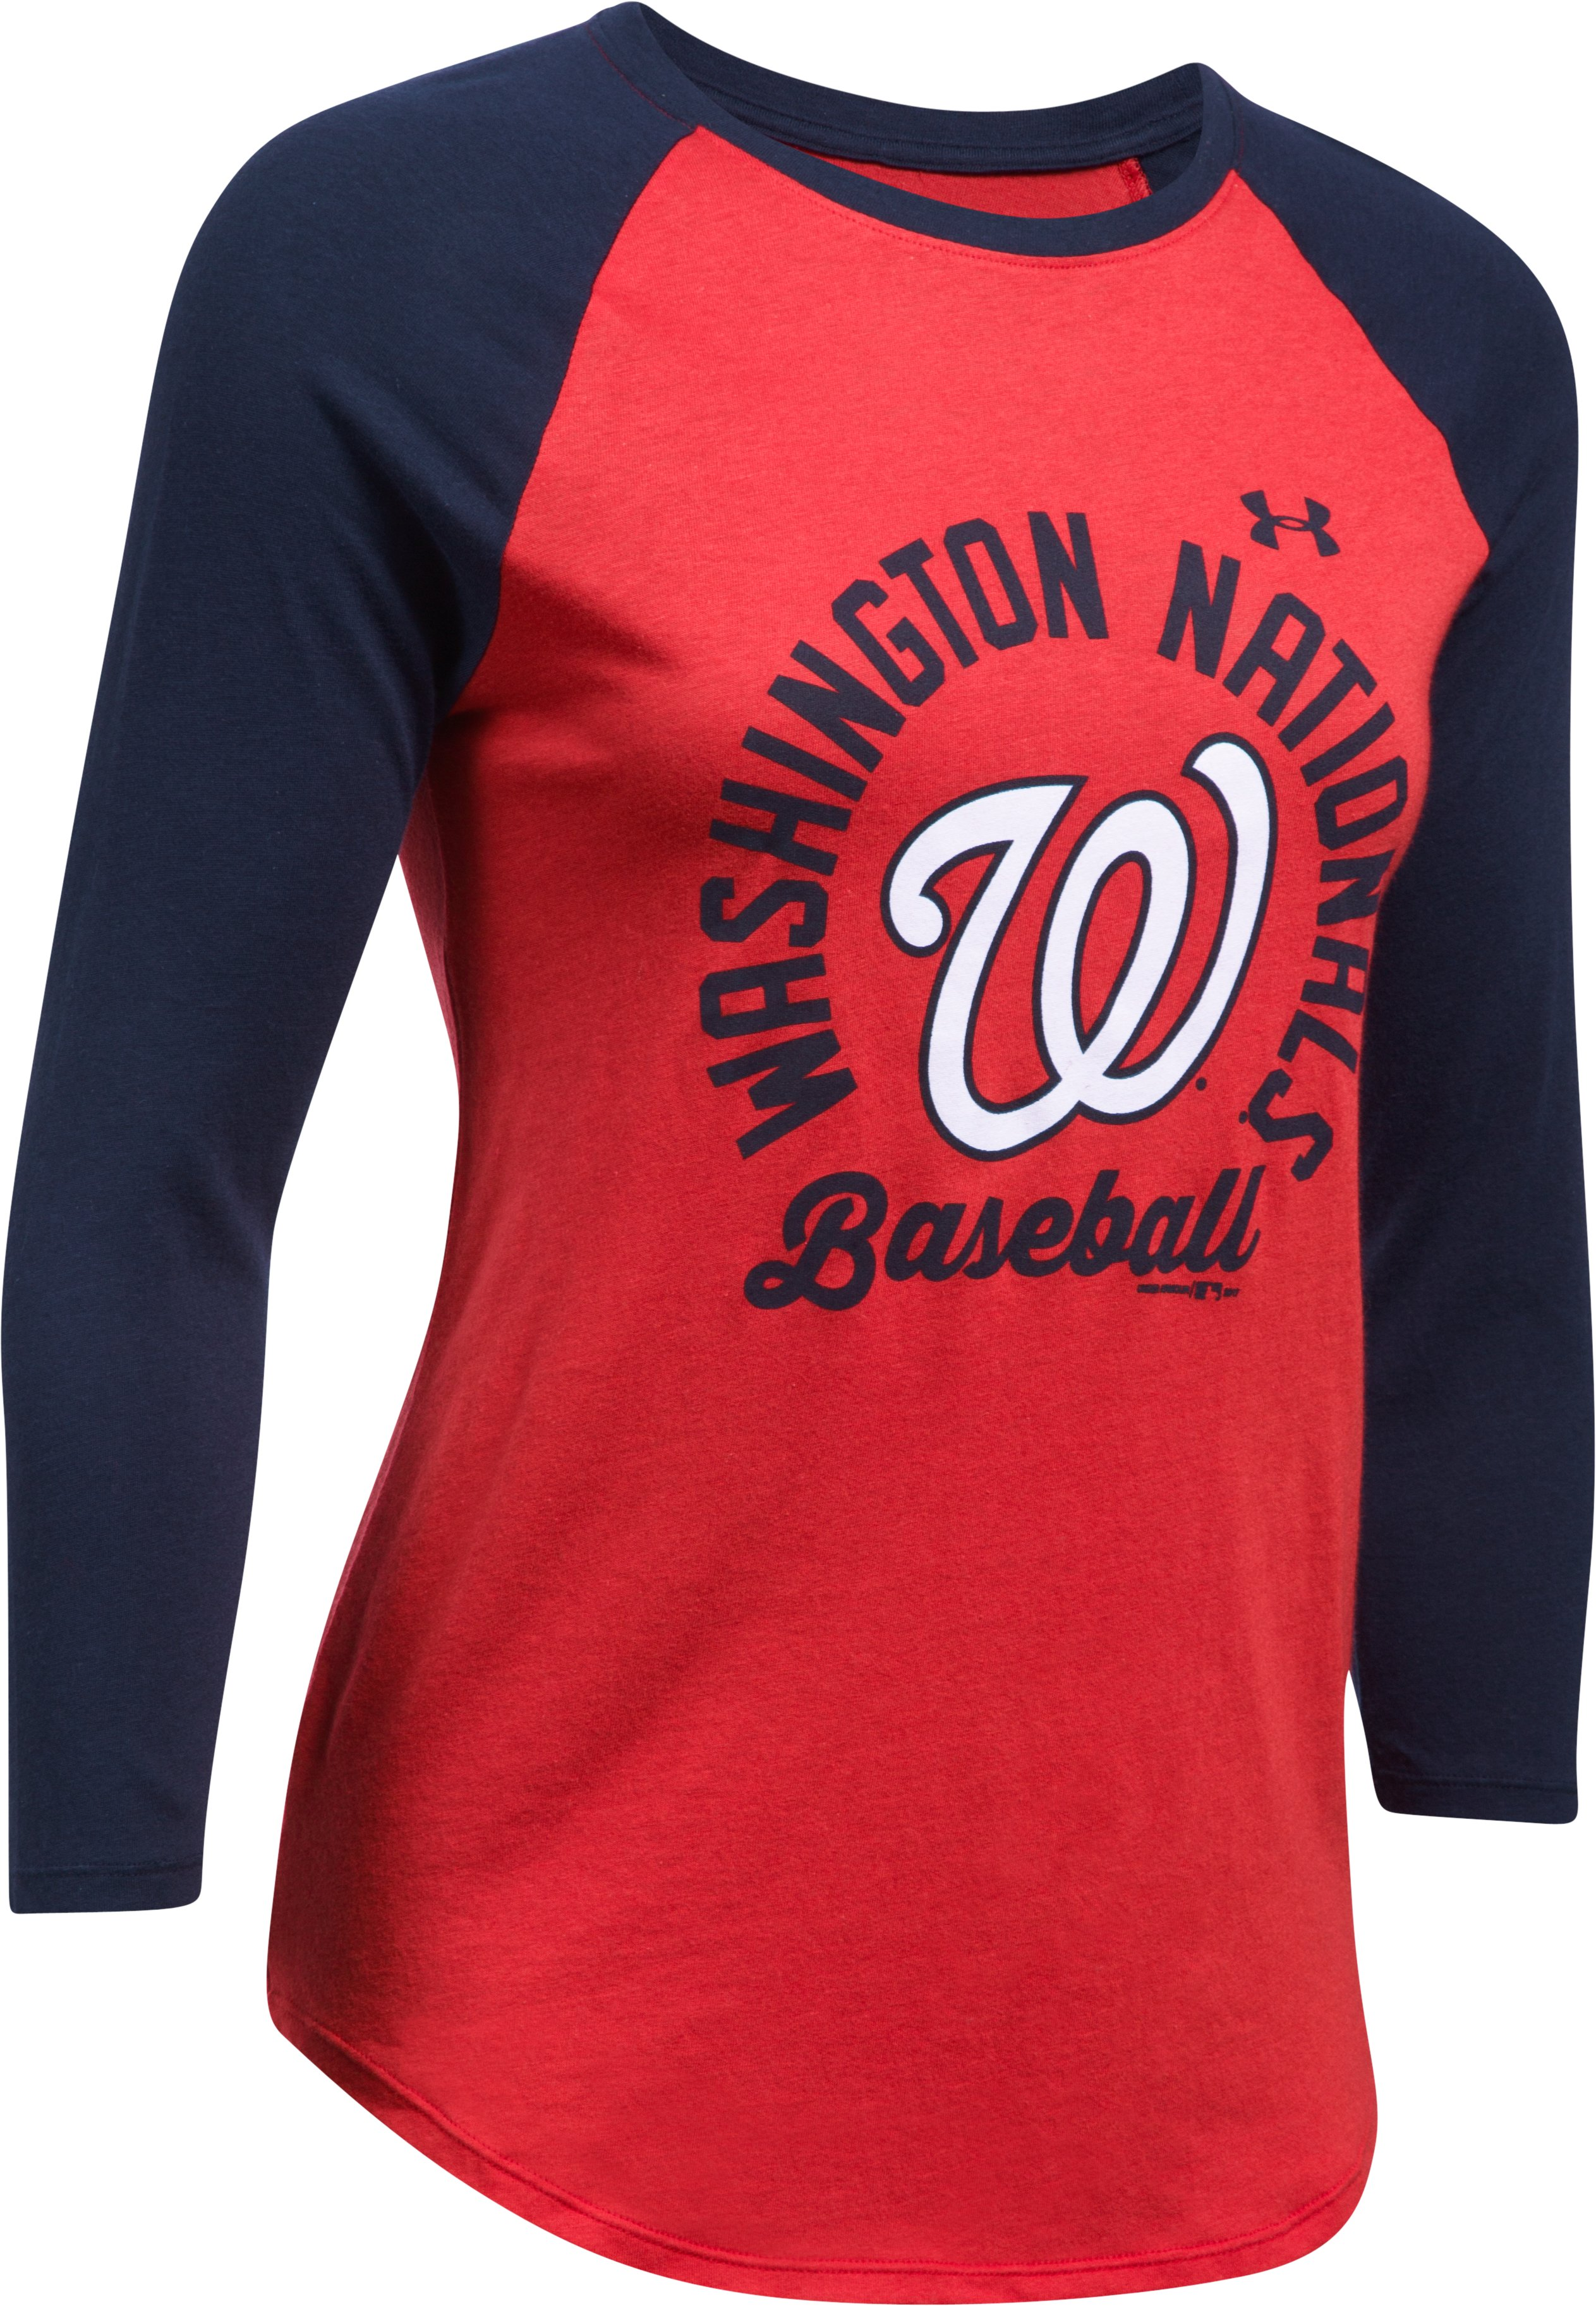 Women's Washington Nationals ¾ Sleeve T-Shirt, Red, undefined